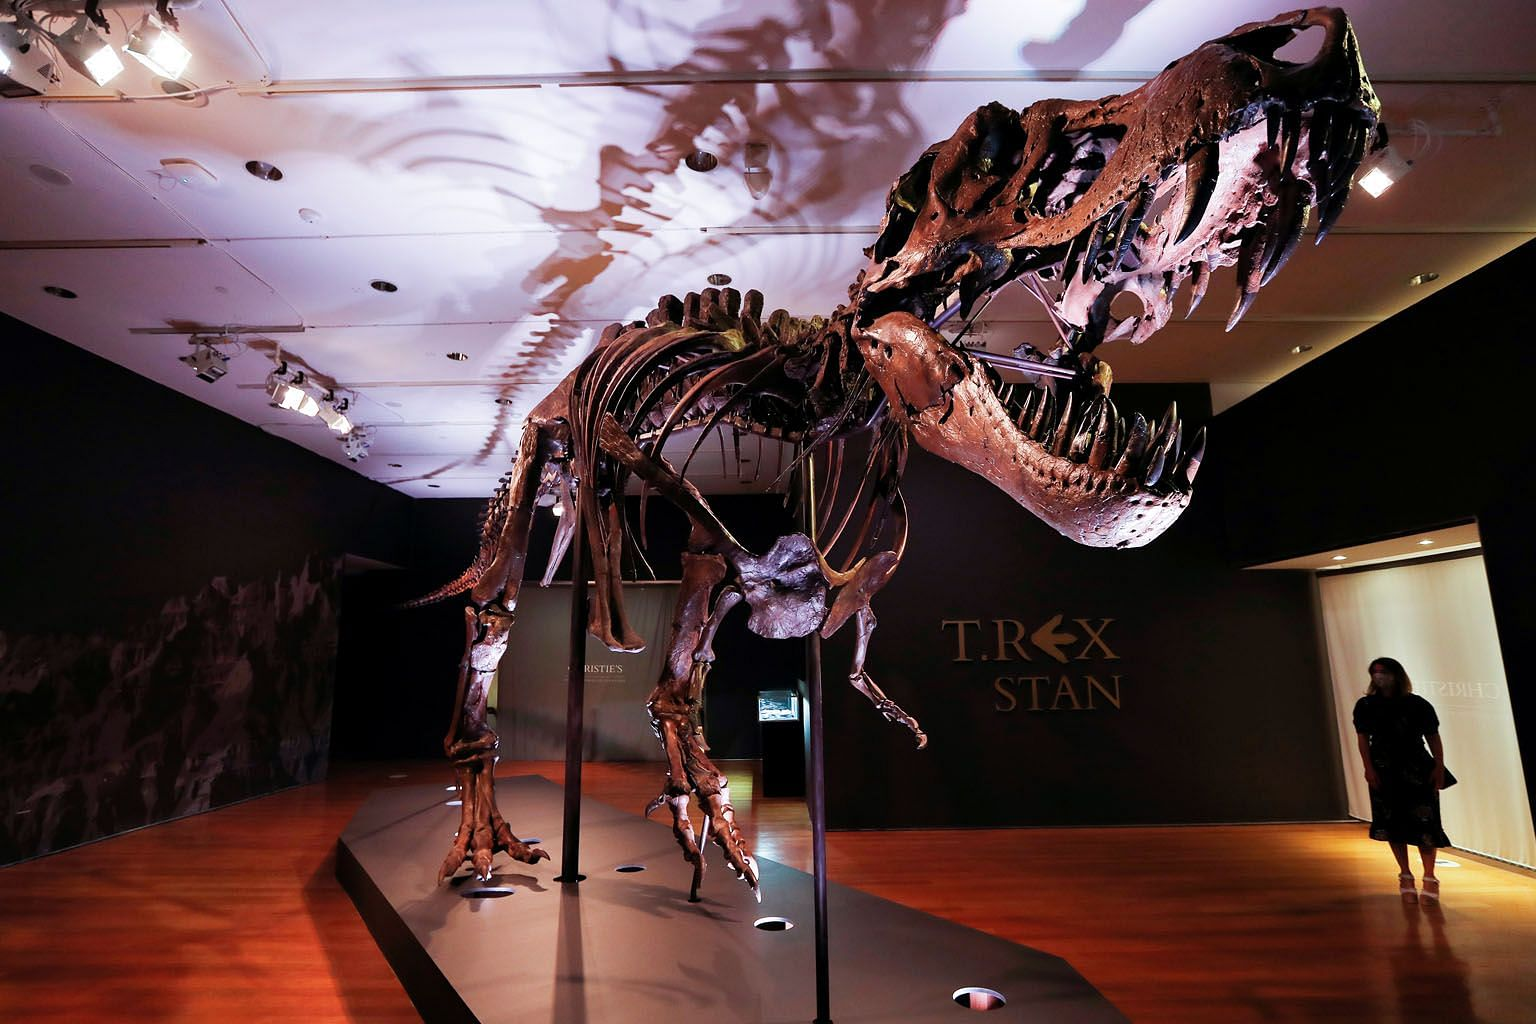 T-Rex Stan, the 12m dinosaur that researchers estimate died 60 million years ago at the age of about 20, on display ahead of its public auction at Christie's in New York City. The 188-bone skeleton is named after Mr Stan Sacrison, the amateur palaeon